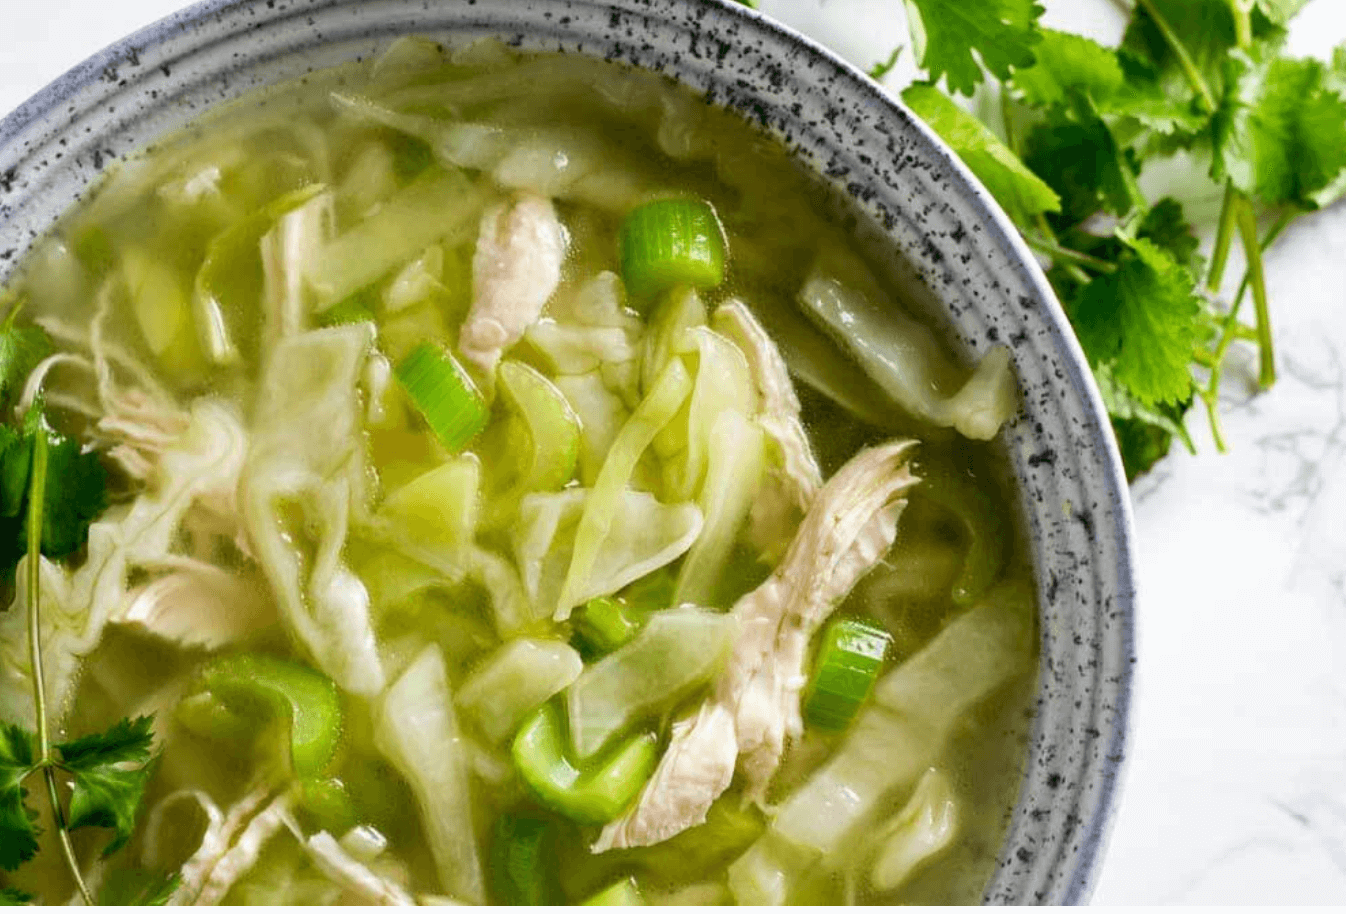 30 Easy Whole30 Soup Recipes | detox cabbage soup